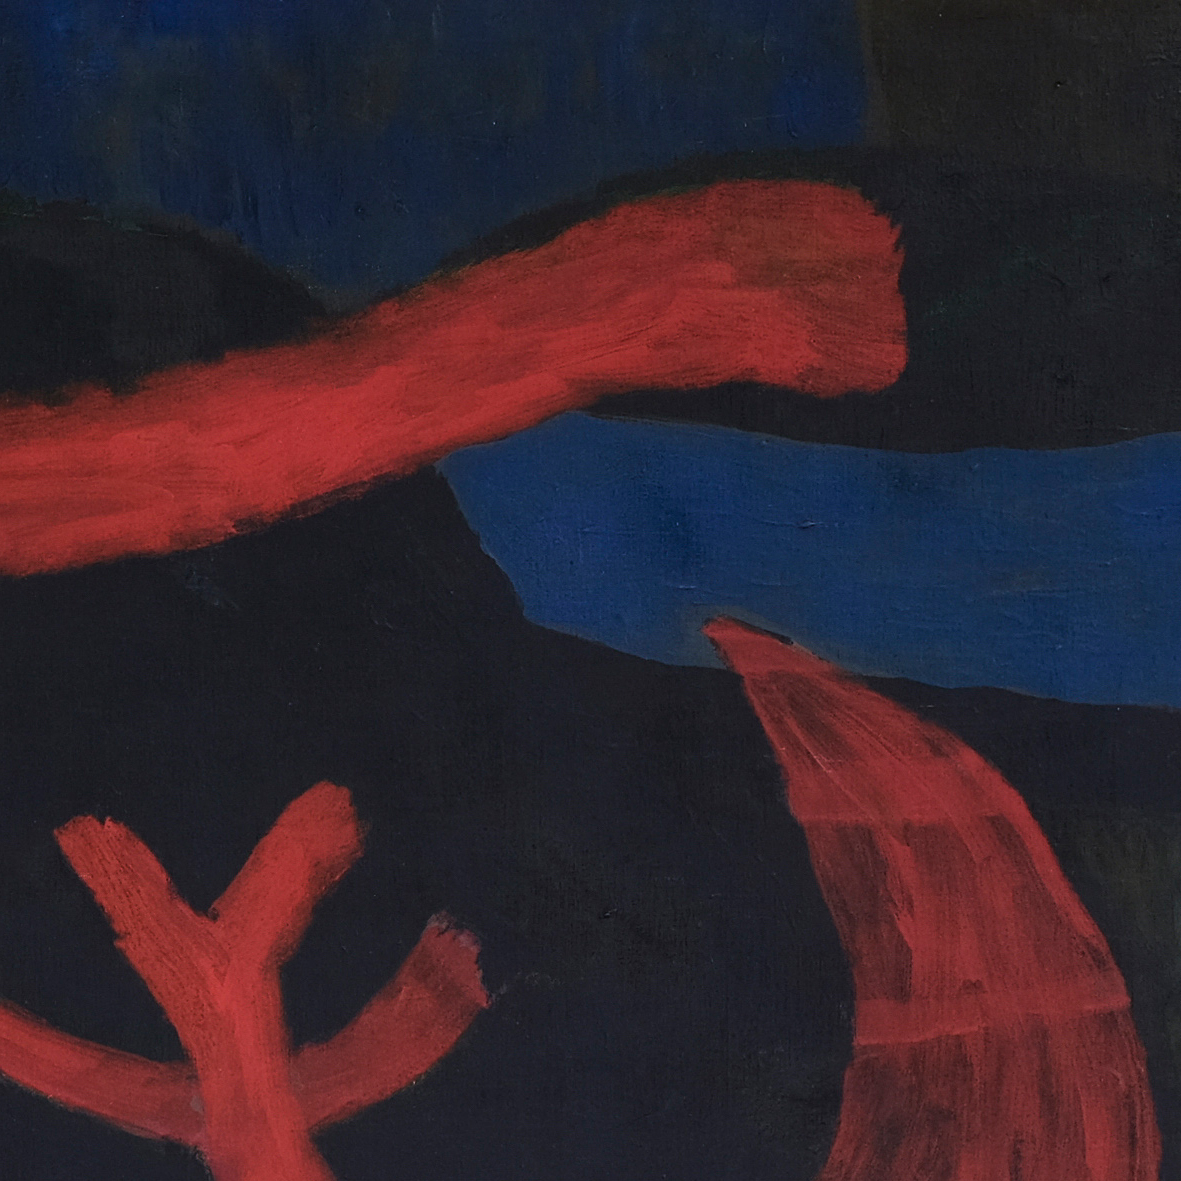 Nashar, Nyayian Malam (Night Song), oil on canvas, 88 x 127 cm, 1977 (detail)